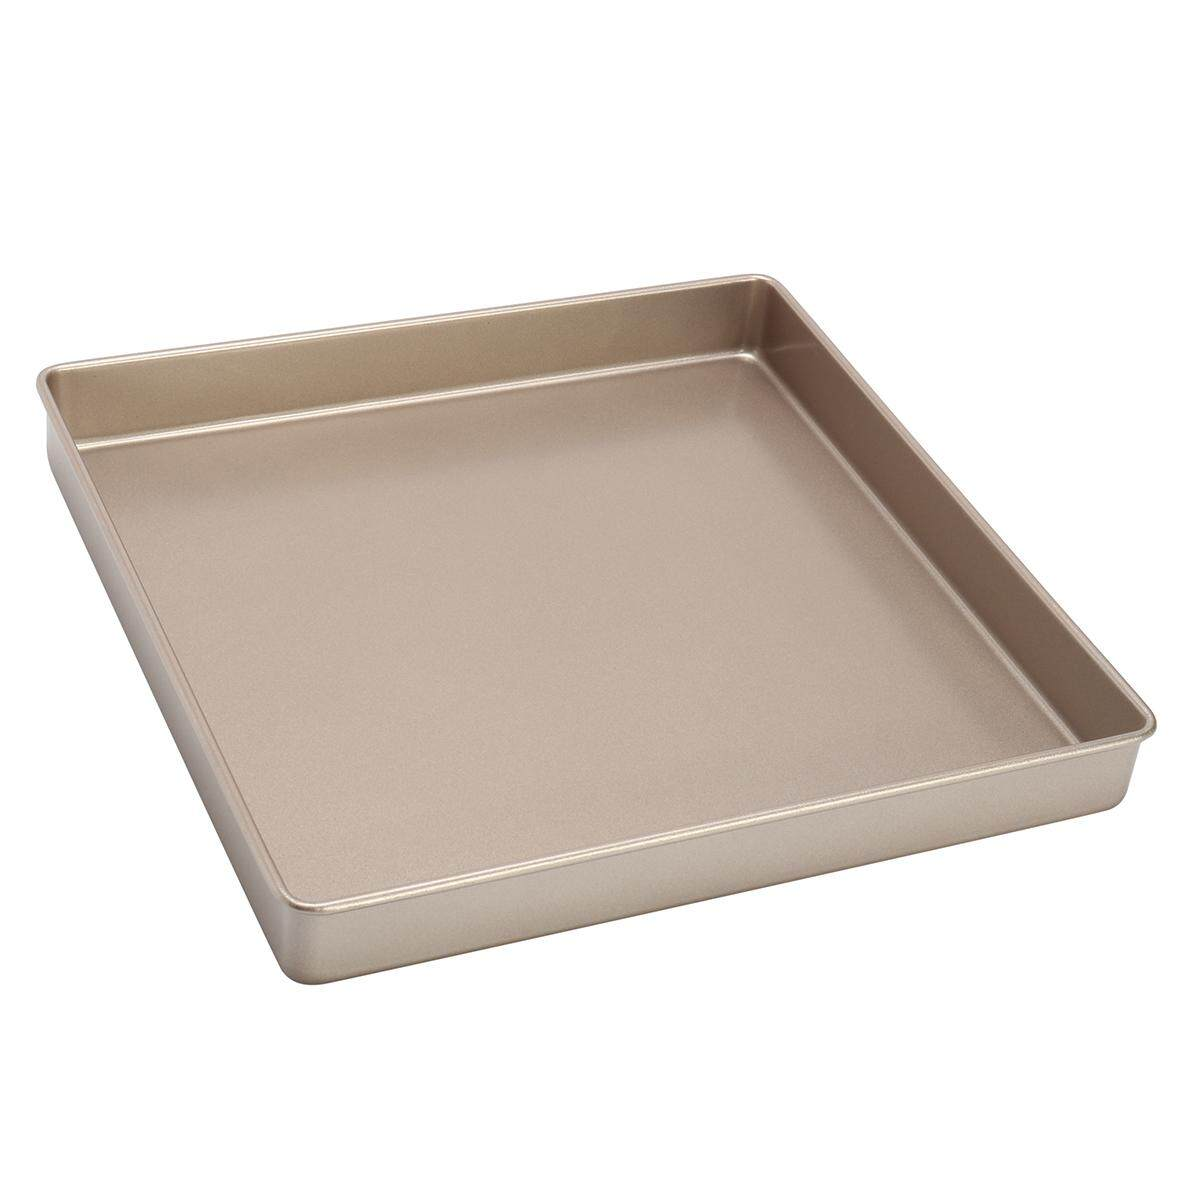 Latest No Brand Baking Trays & Pans Products | Enjoy Huge